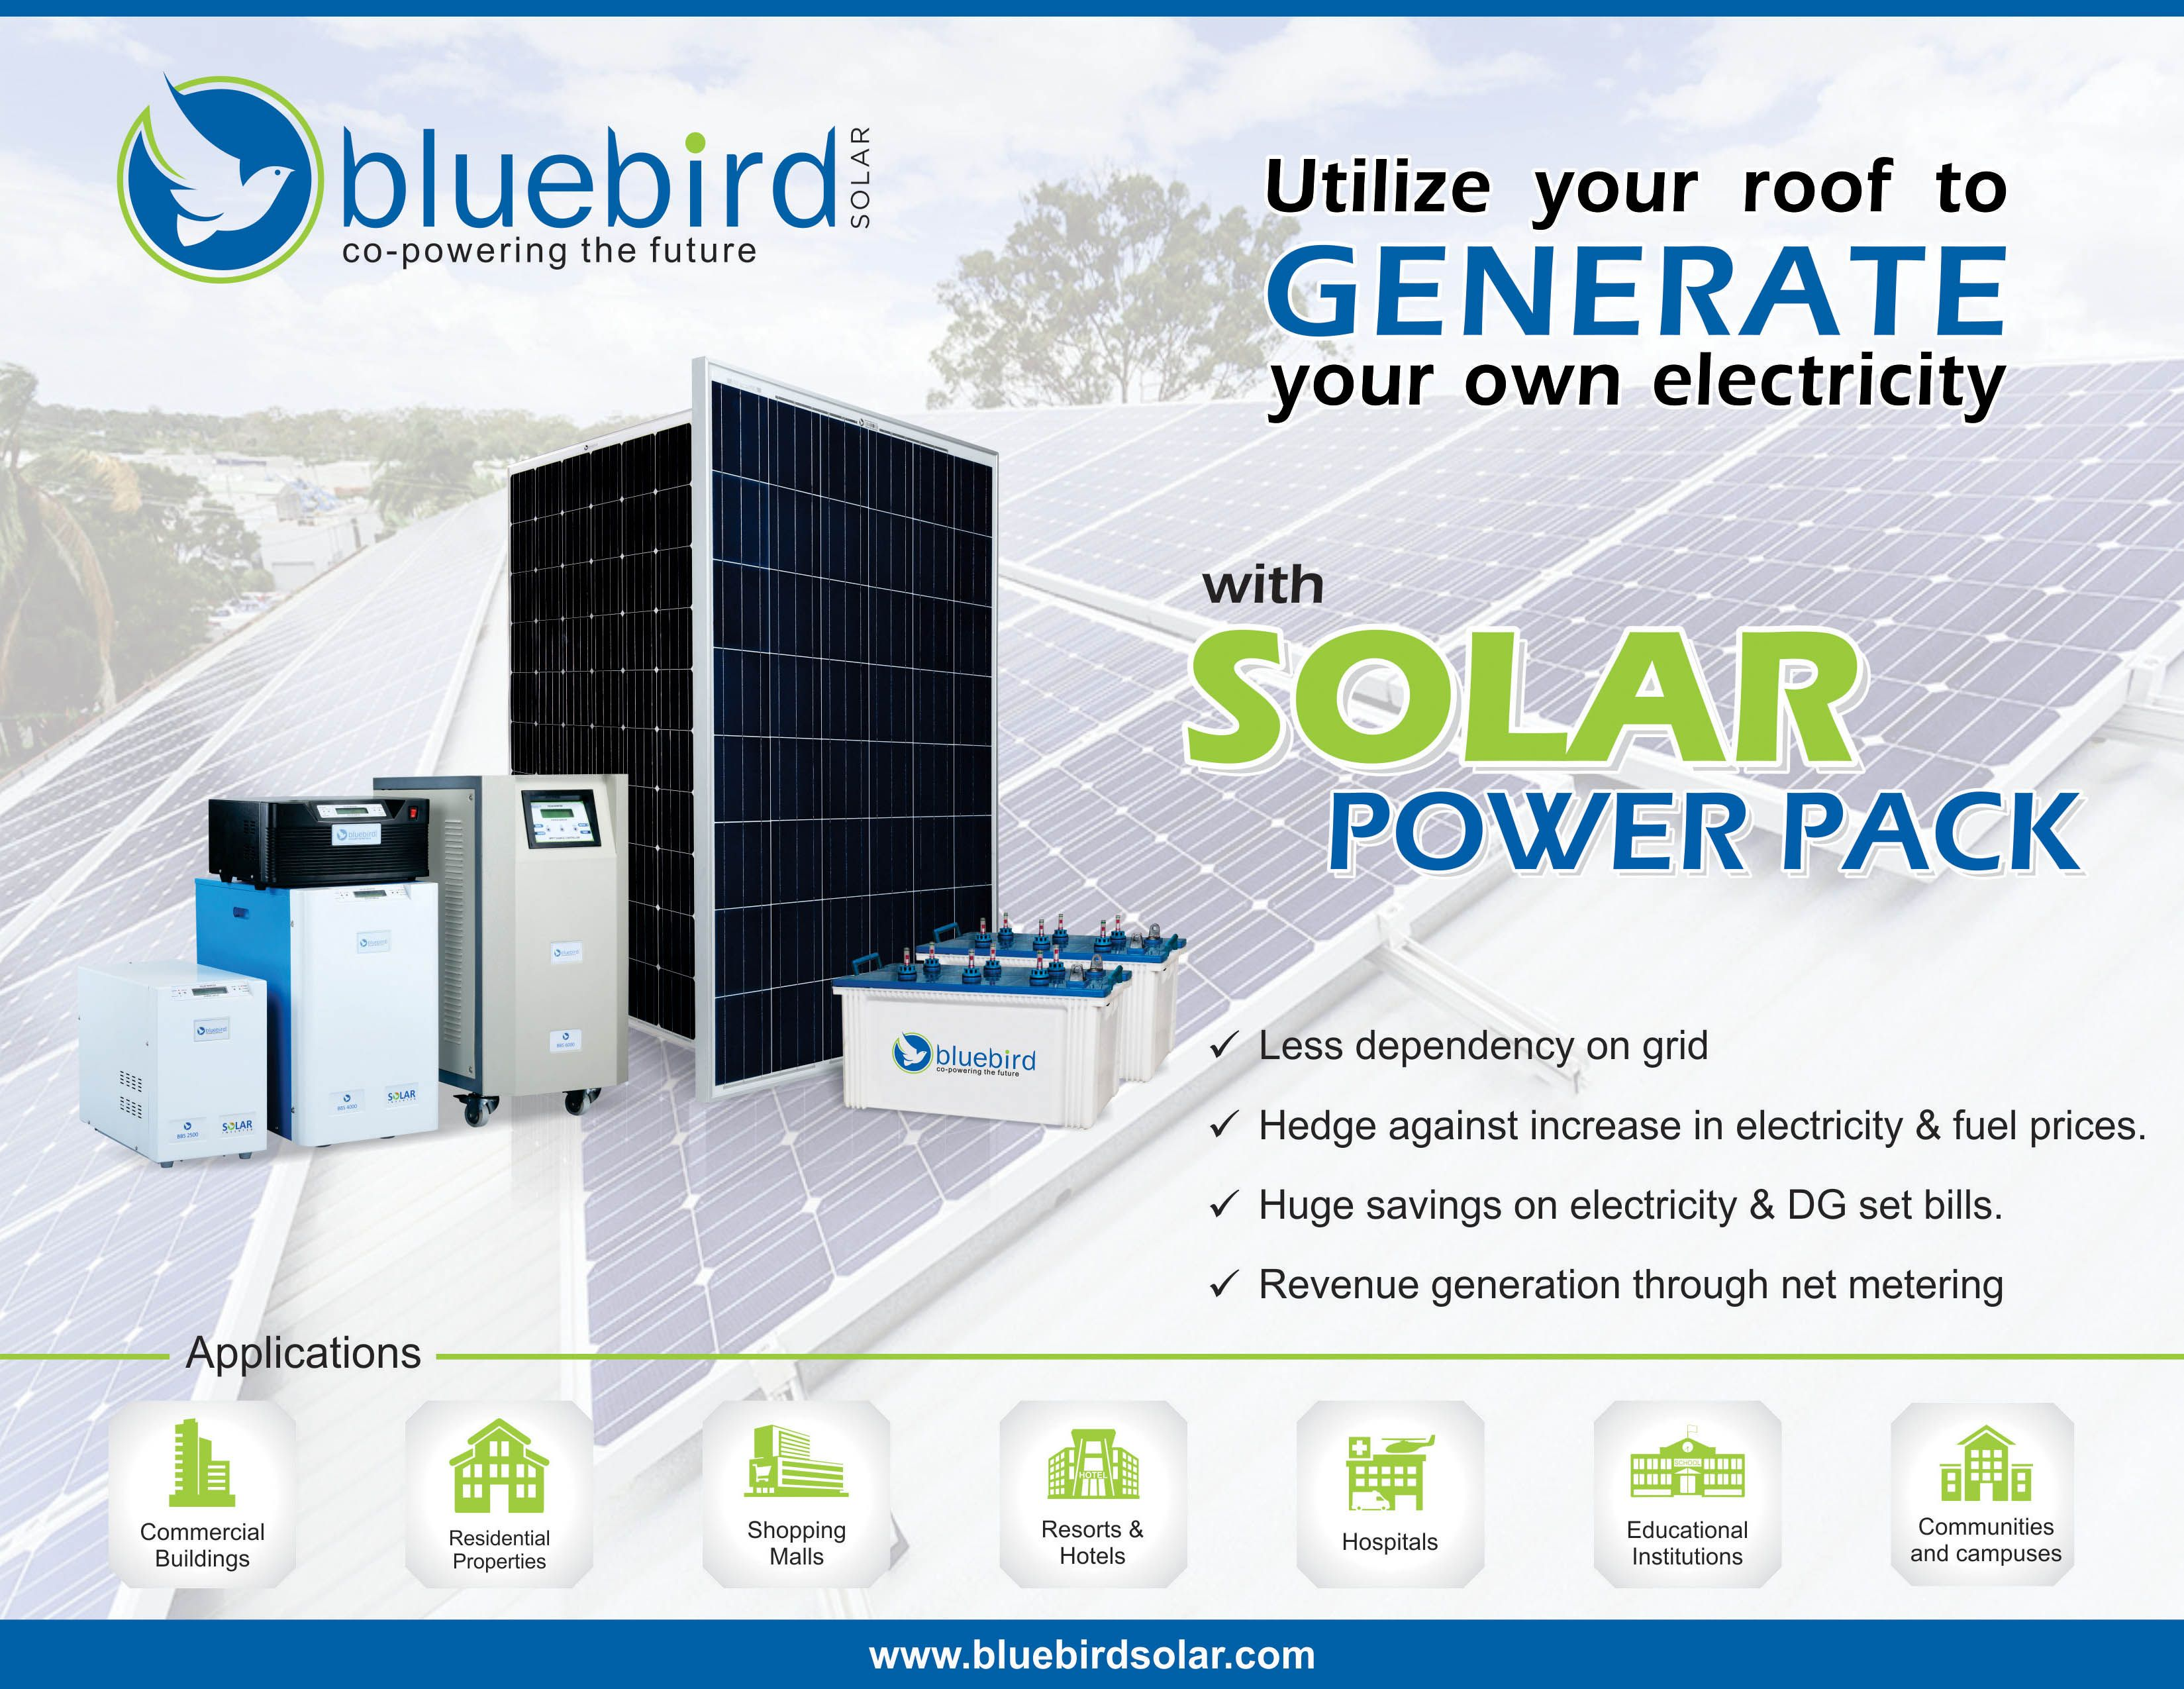 Rely On Self For Power Generation No More High Electricity Bills No More Expenditure On Fuel For Dg Set Go For Bluebird Sola Solar Power Solar Power Pack